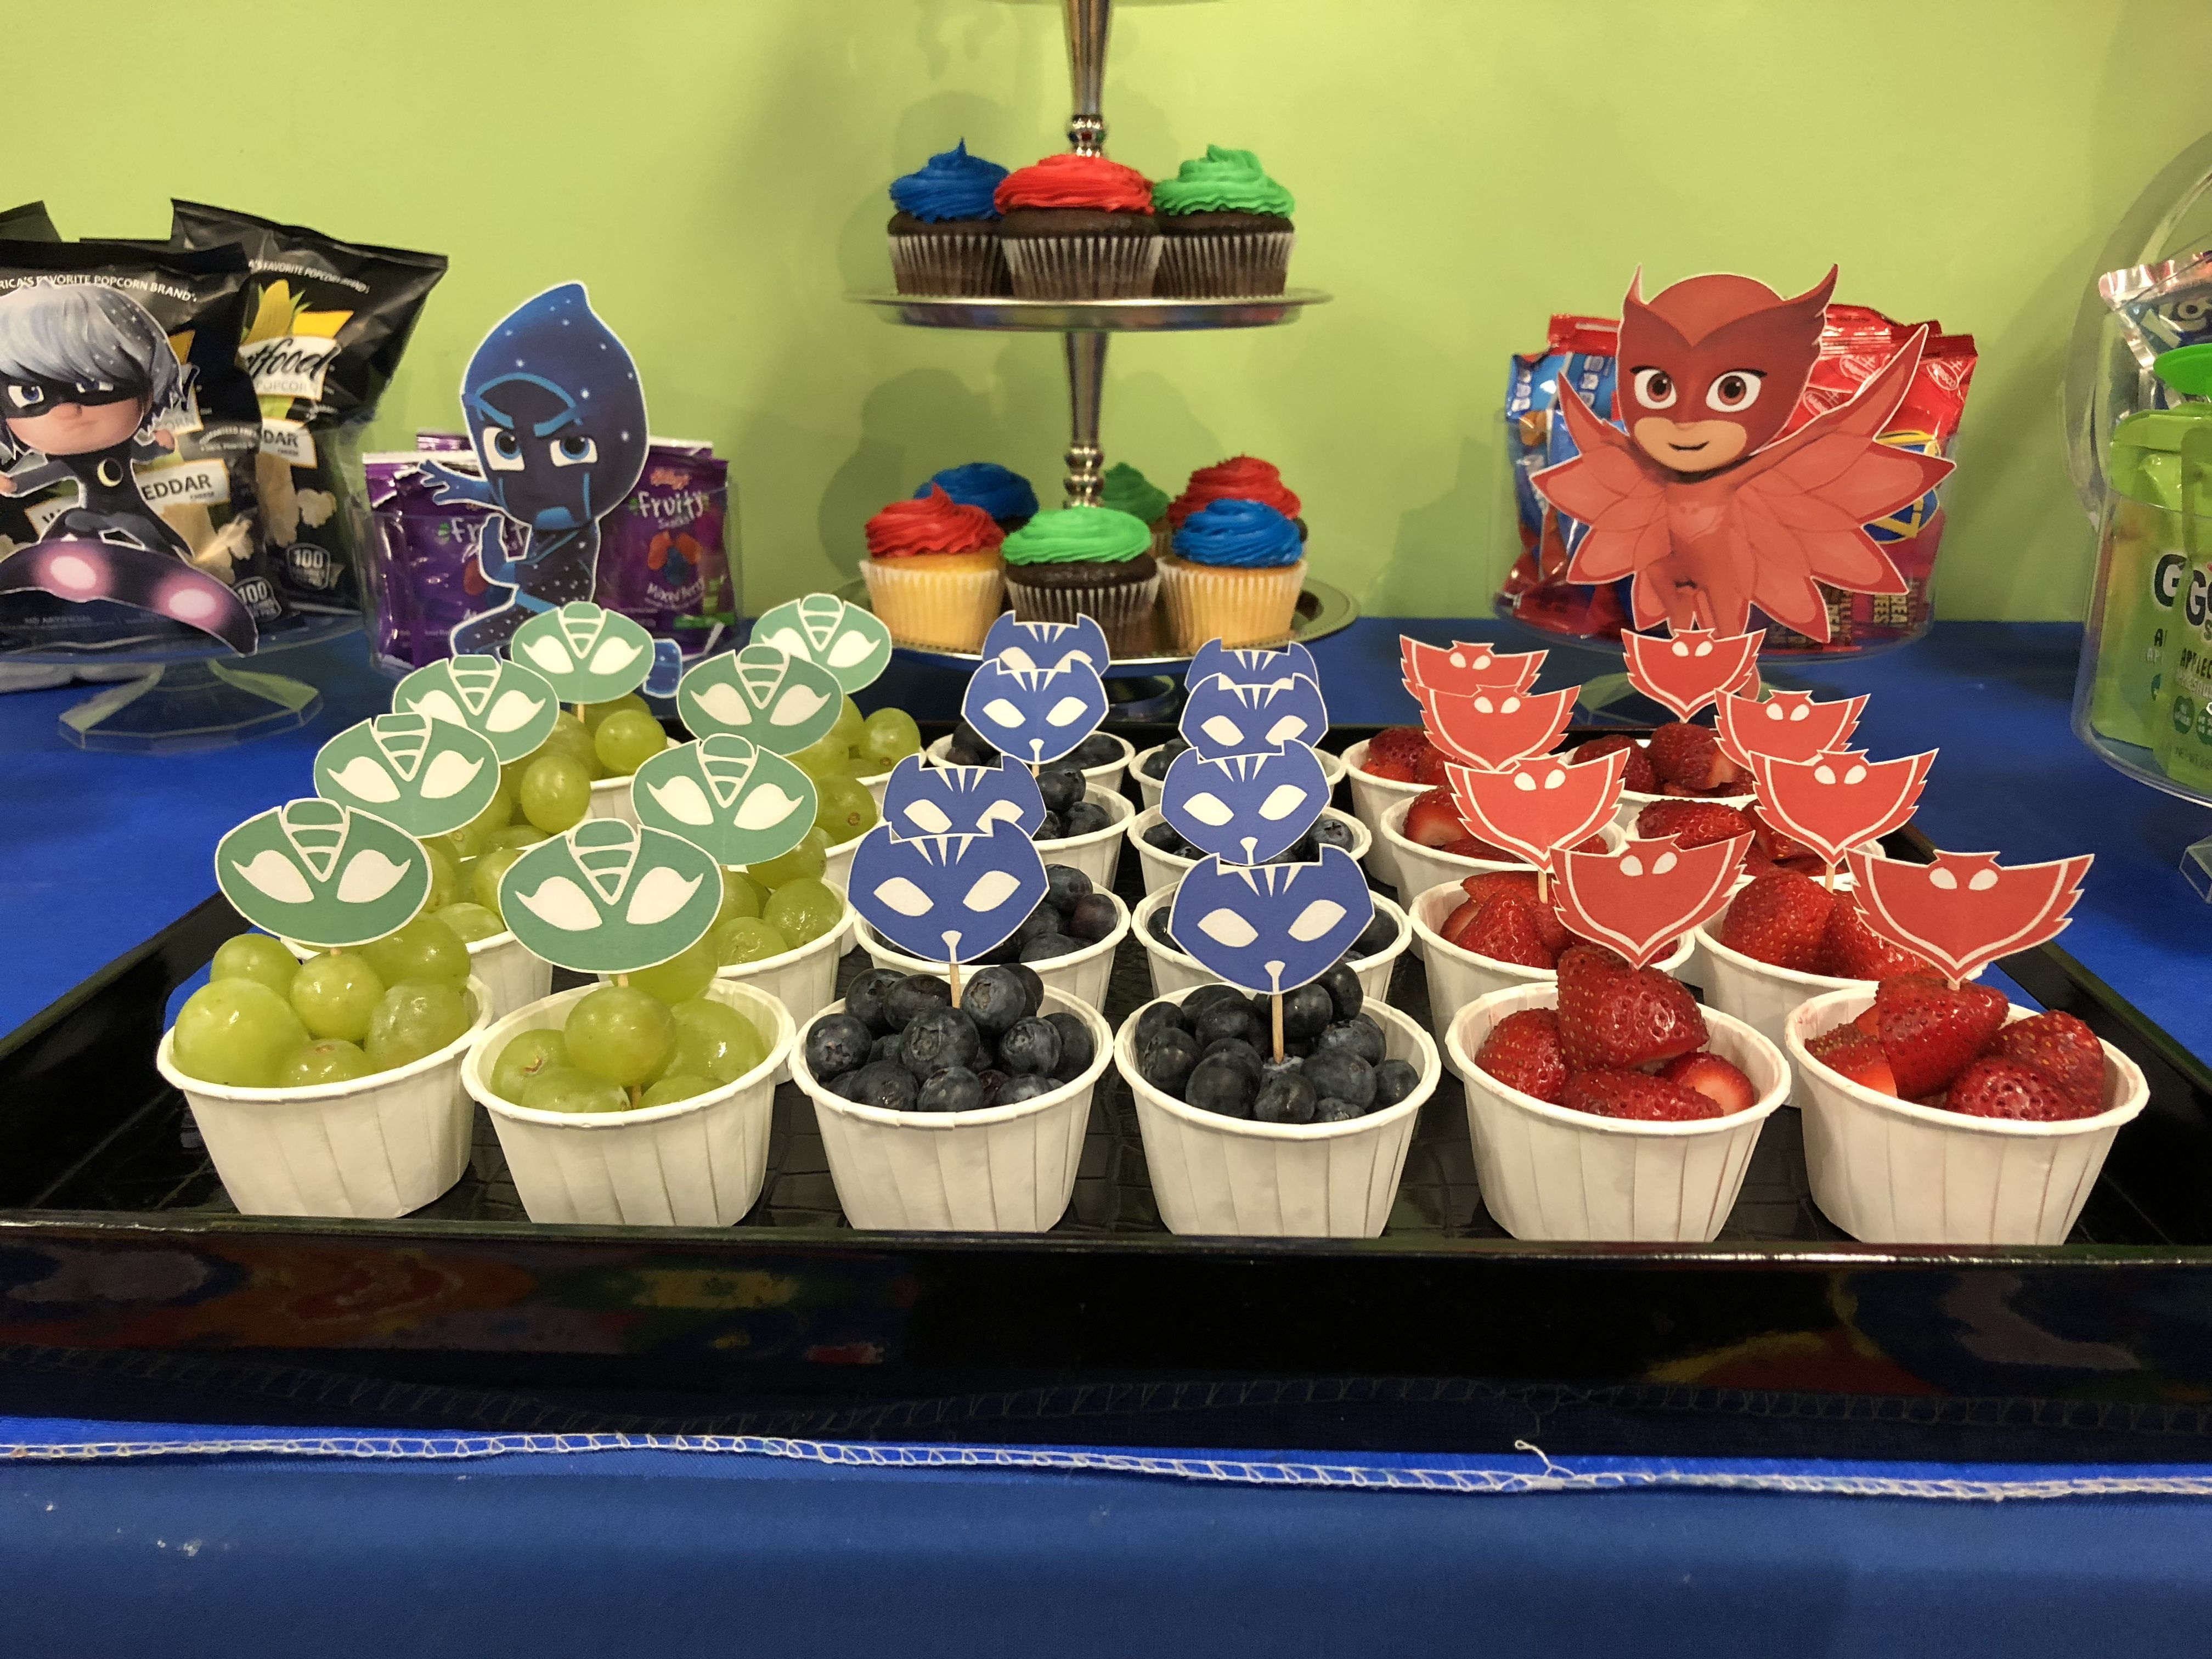 Pin by keke 💋 on Party Ideas   Pj masks birthday party